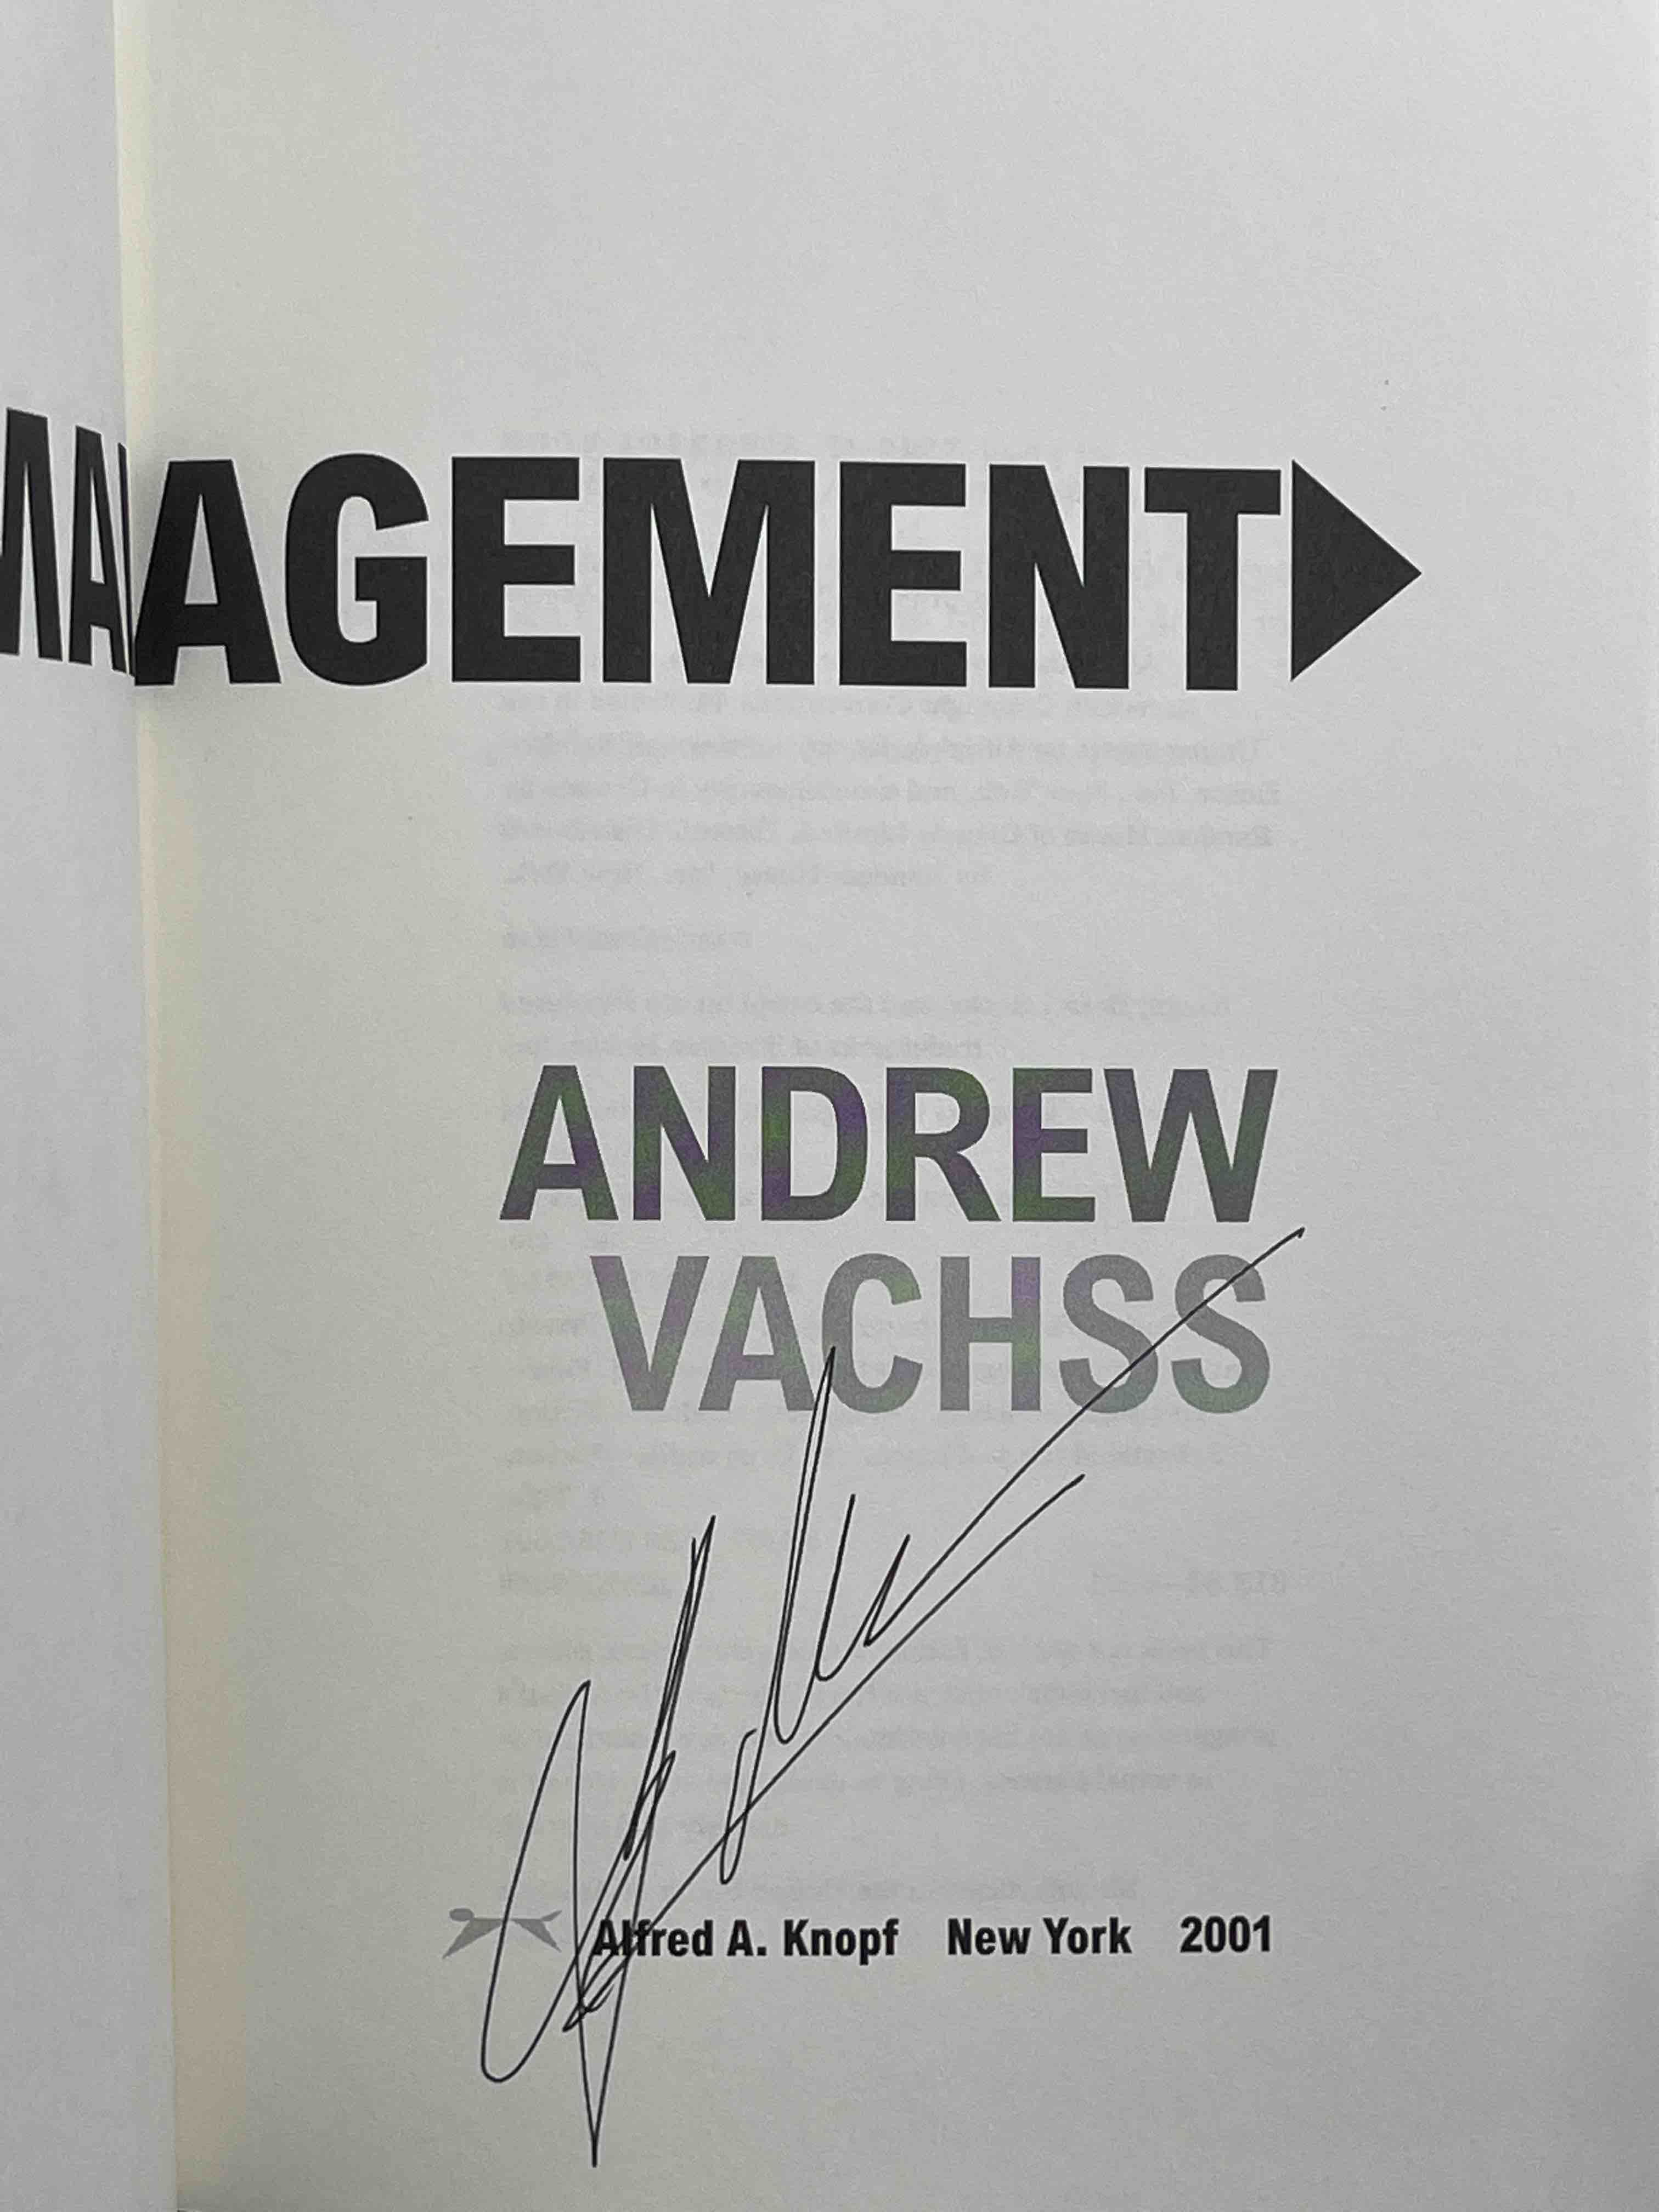 Book cover picture of Vachss, Andrew. PAIN MANAGEMENT. New York: Alfred A. Knopf, 2001.